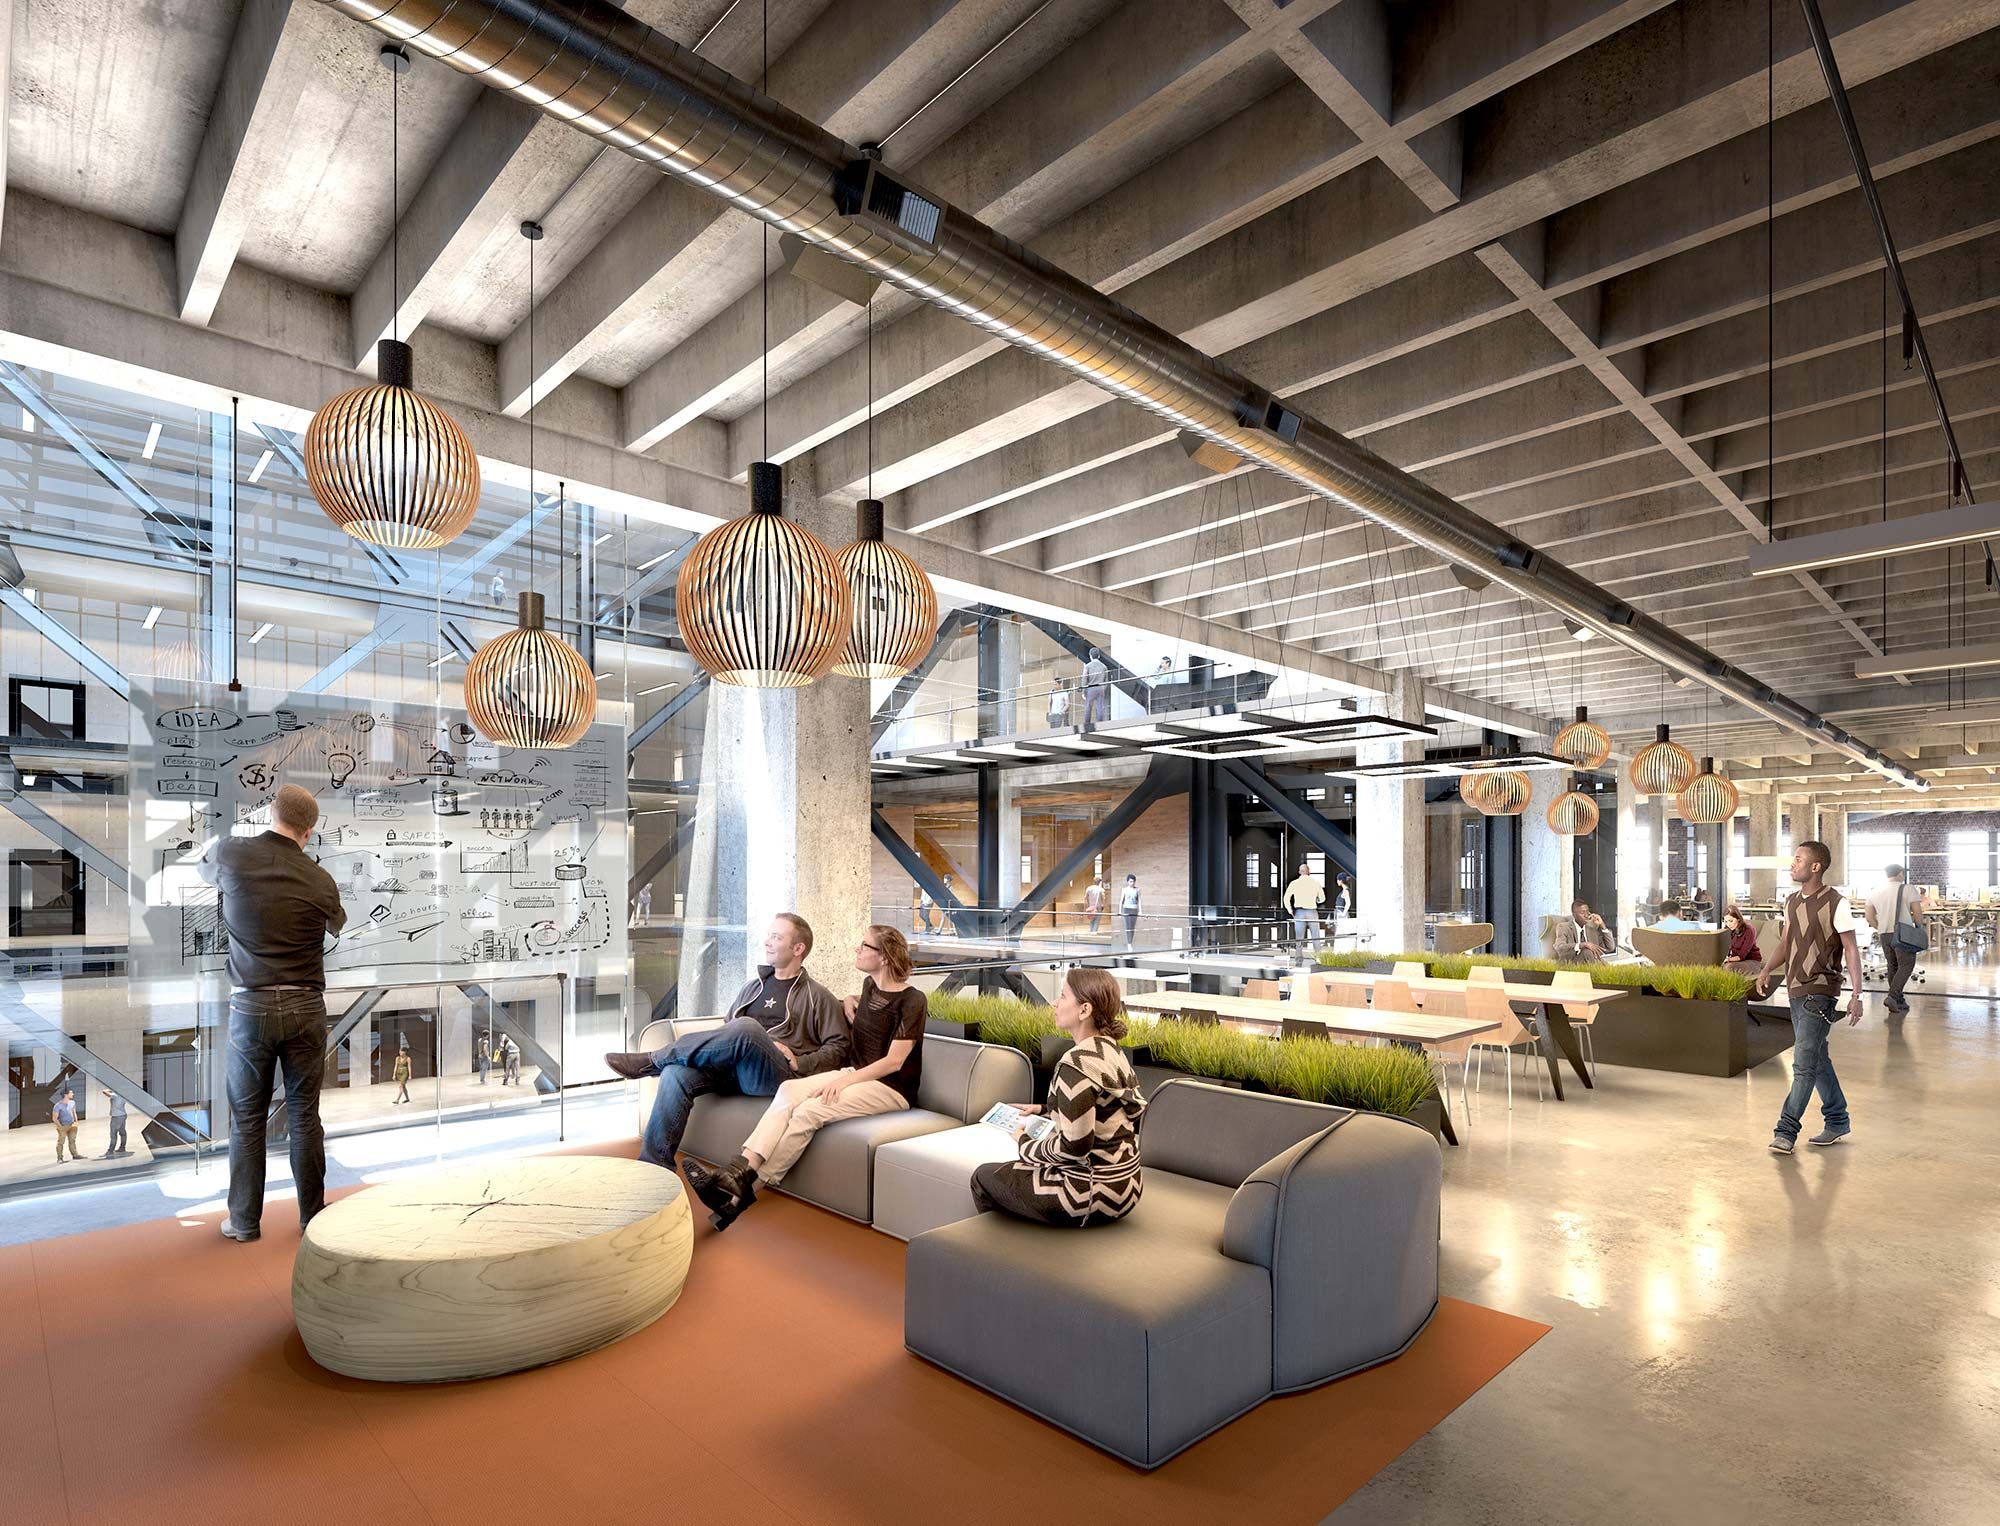 Playful and Ambitious e Workplace Project in Santa Clara California officedesign creativeworkspace design